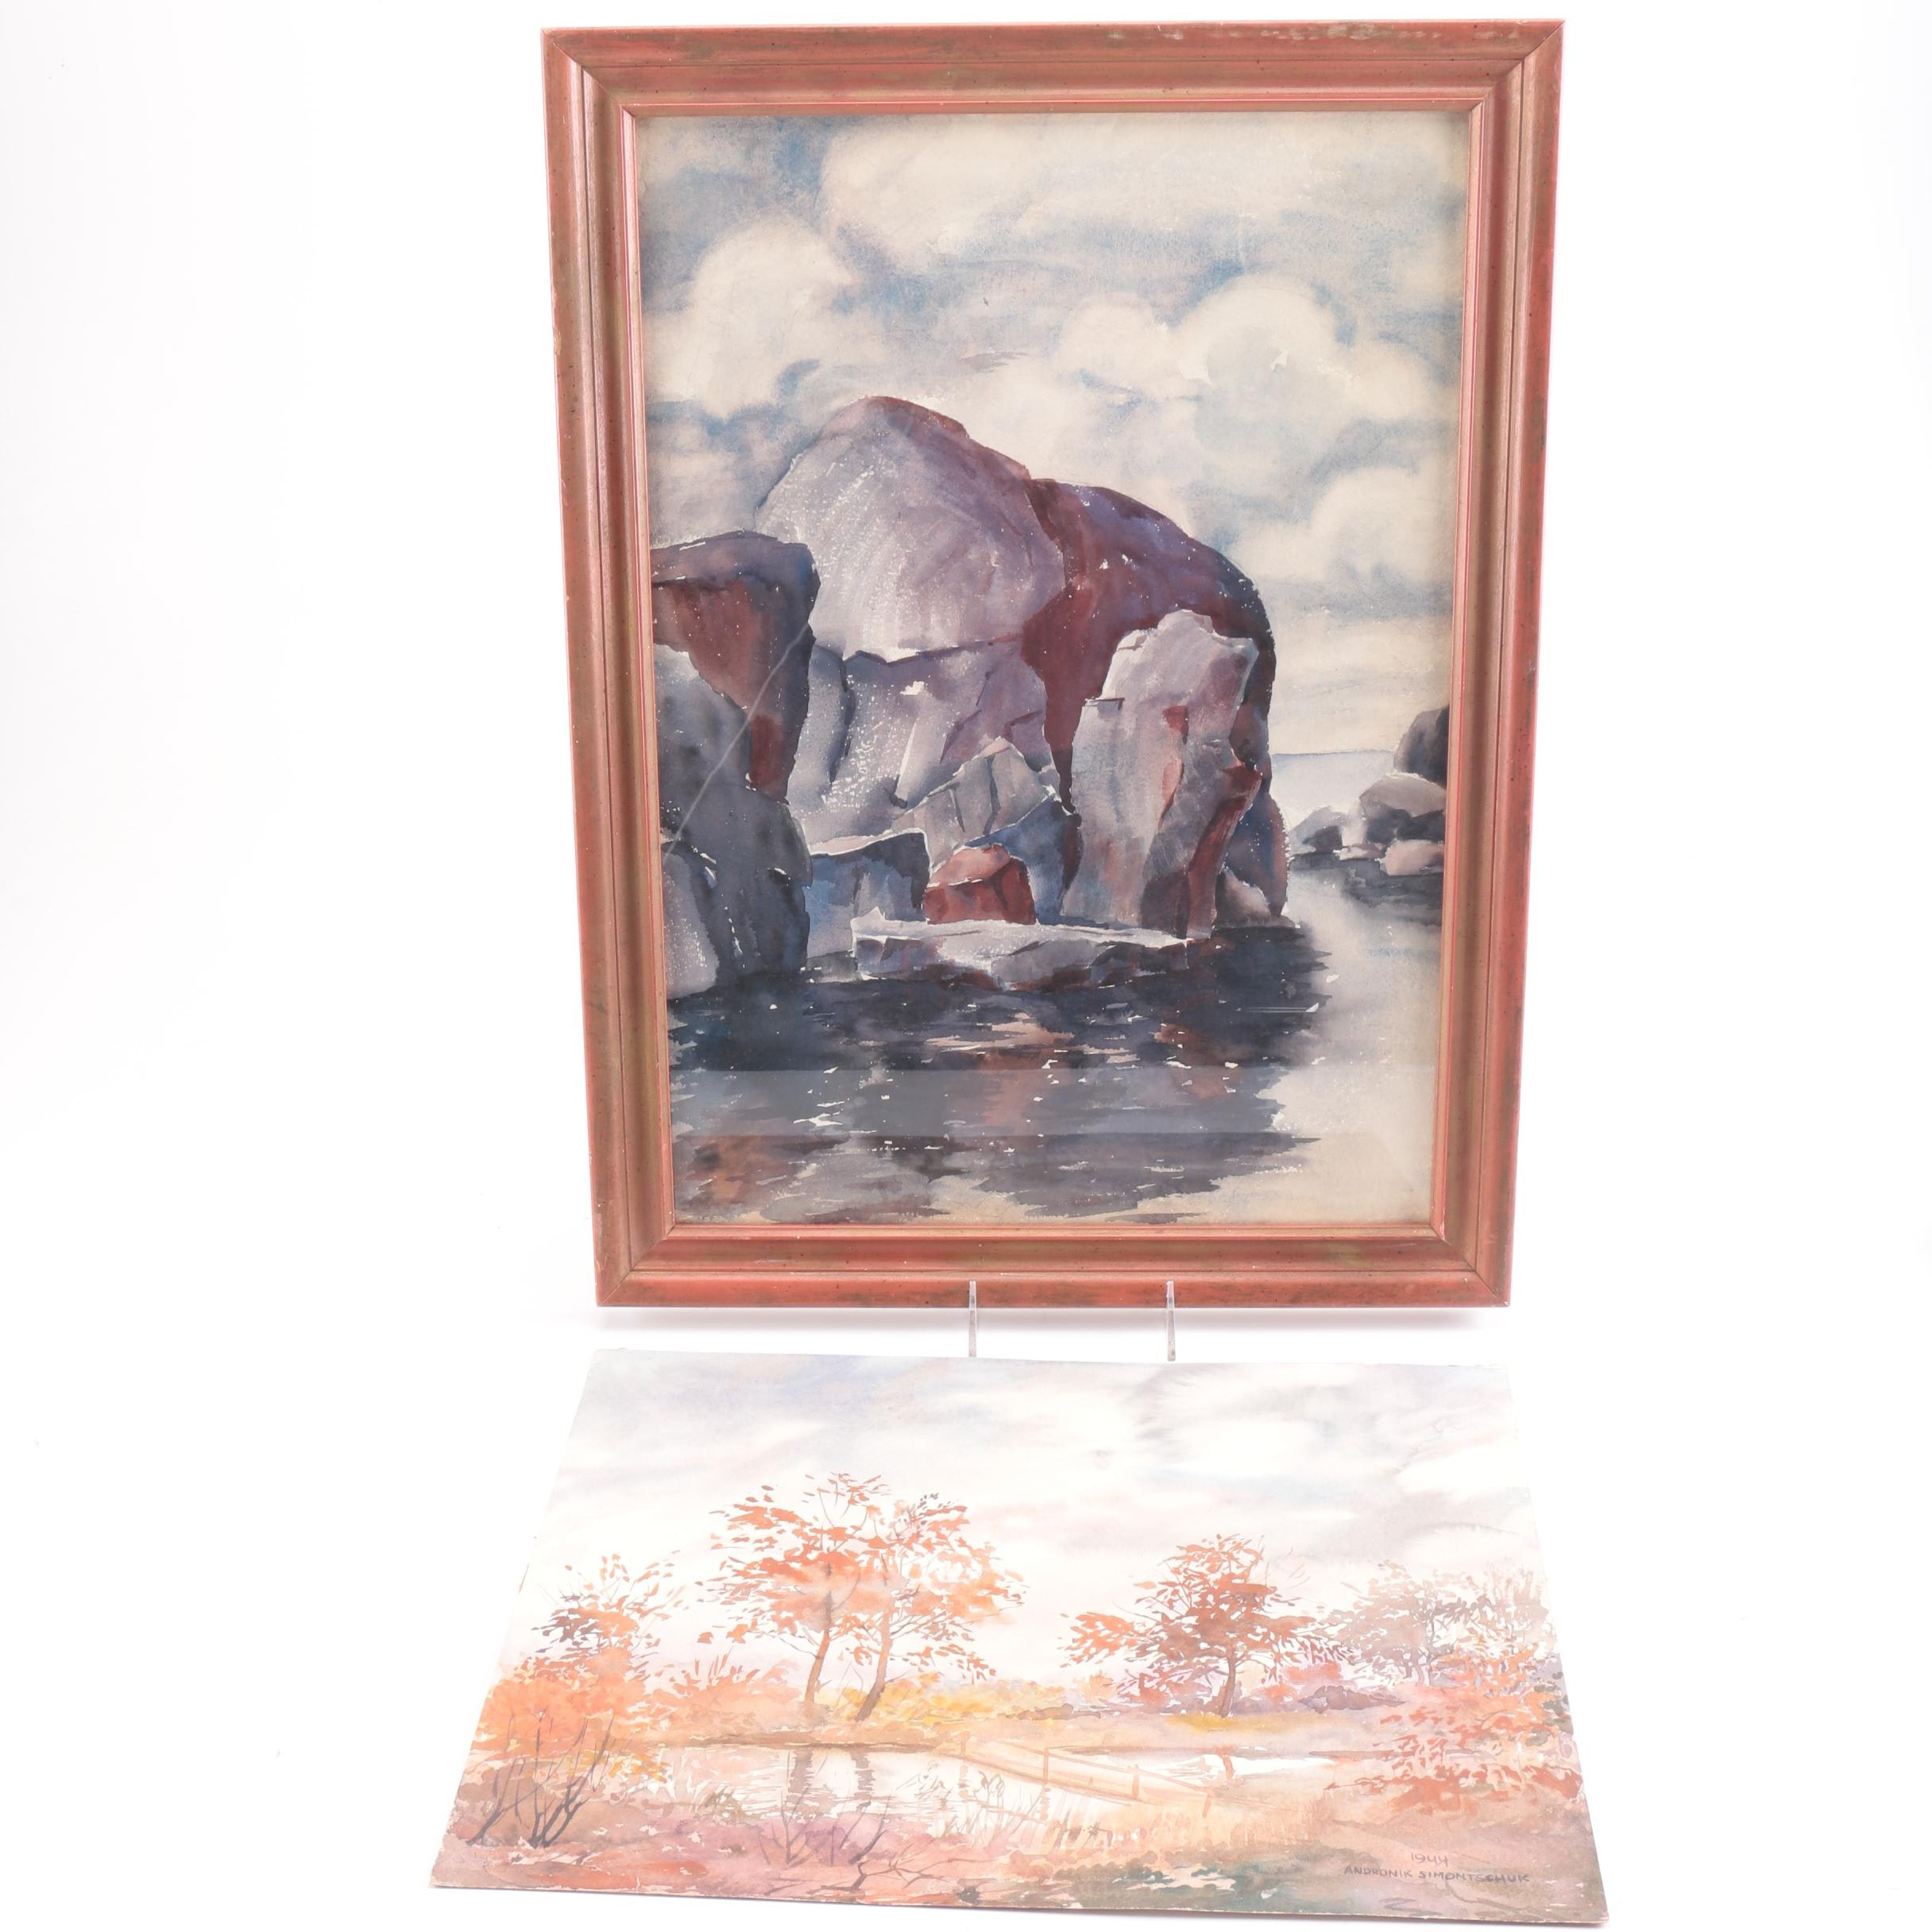 Raoul Monory and Andronik Simontschuk Landscape Watercolors on Paper